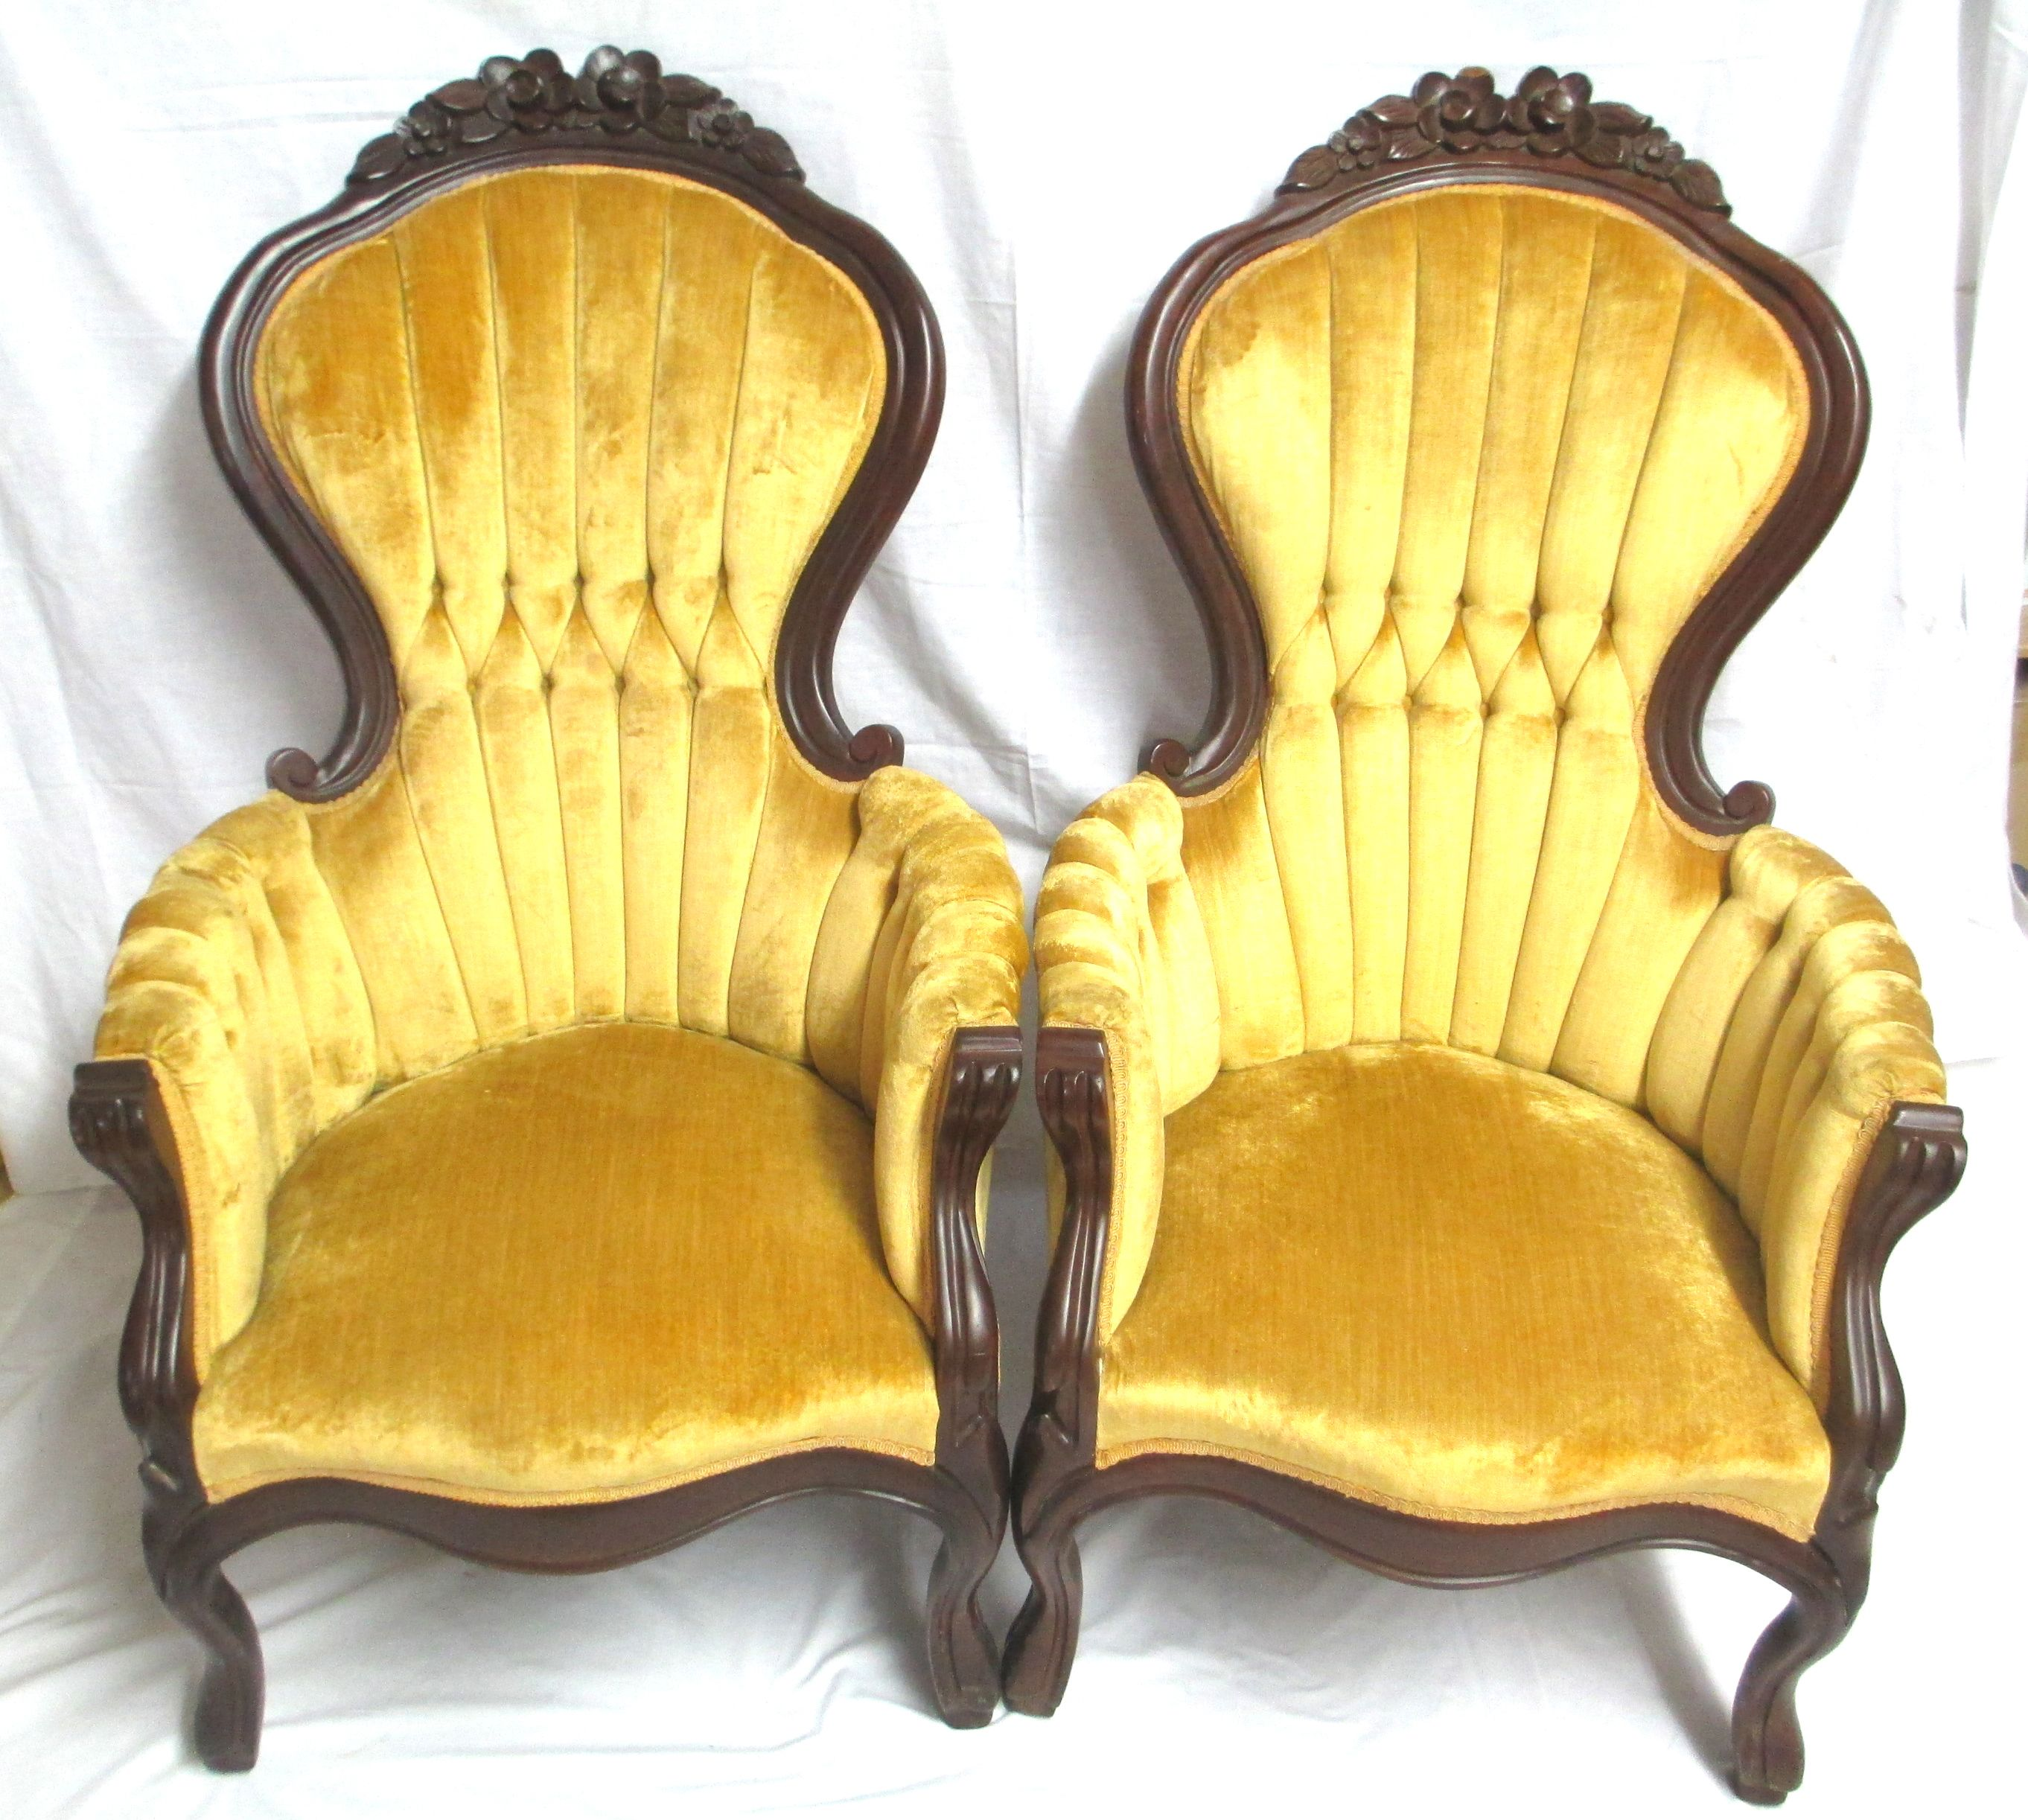 Kimball Bedroom Furniture Pair Of Vintage Kimball Victorian Rose Carved Highback Chairs